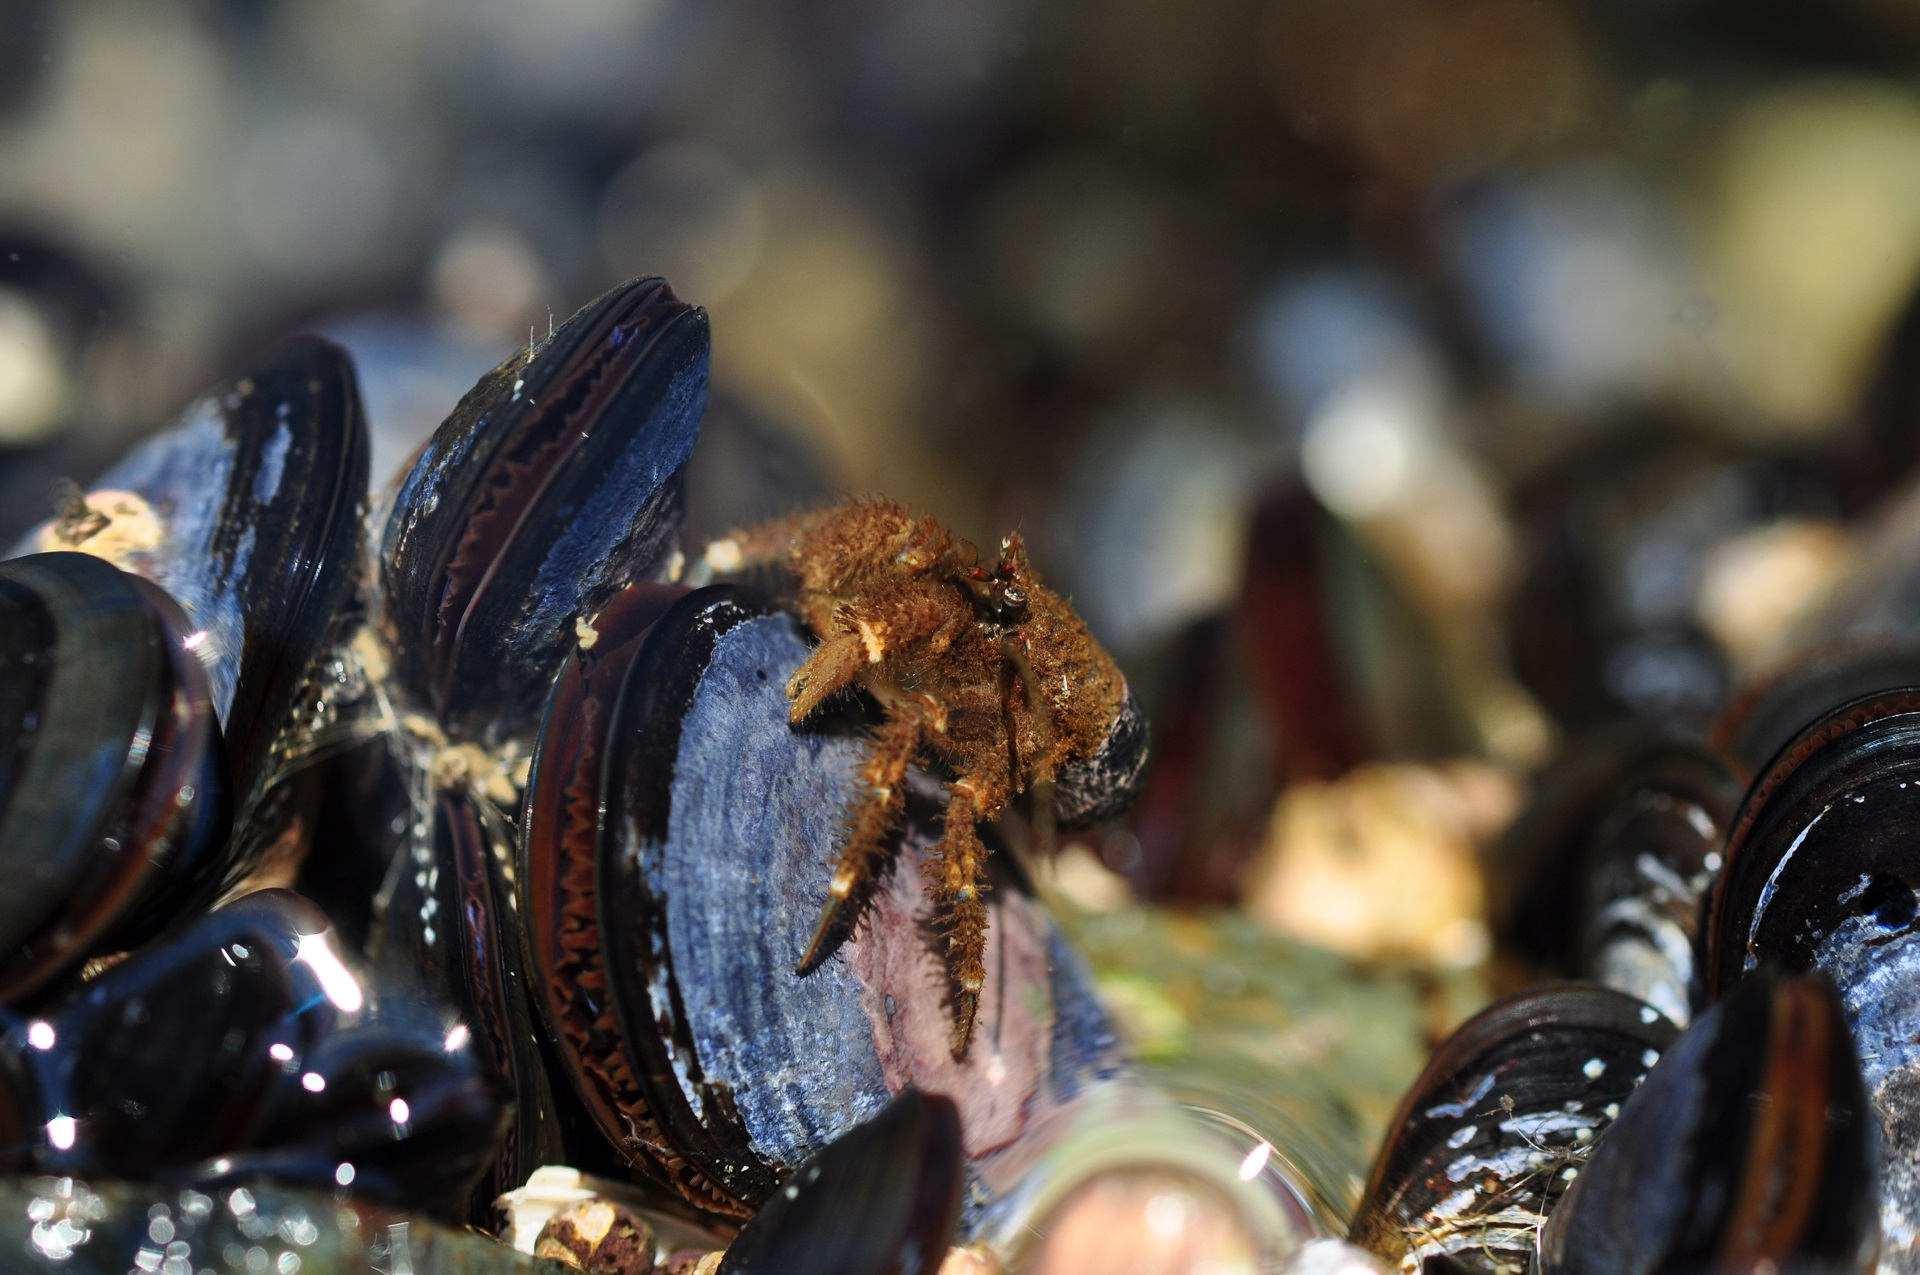 close up of a small orange hermit crab on an oyster in an oysterbed